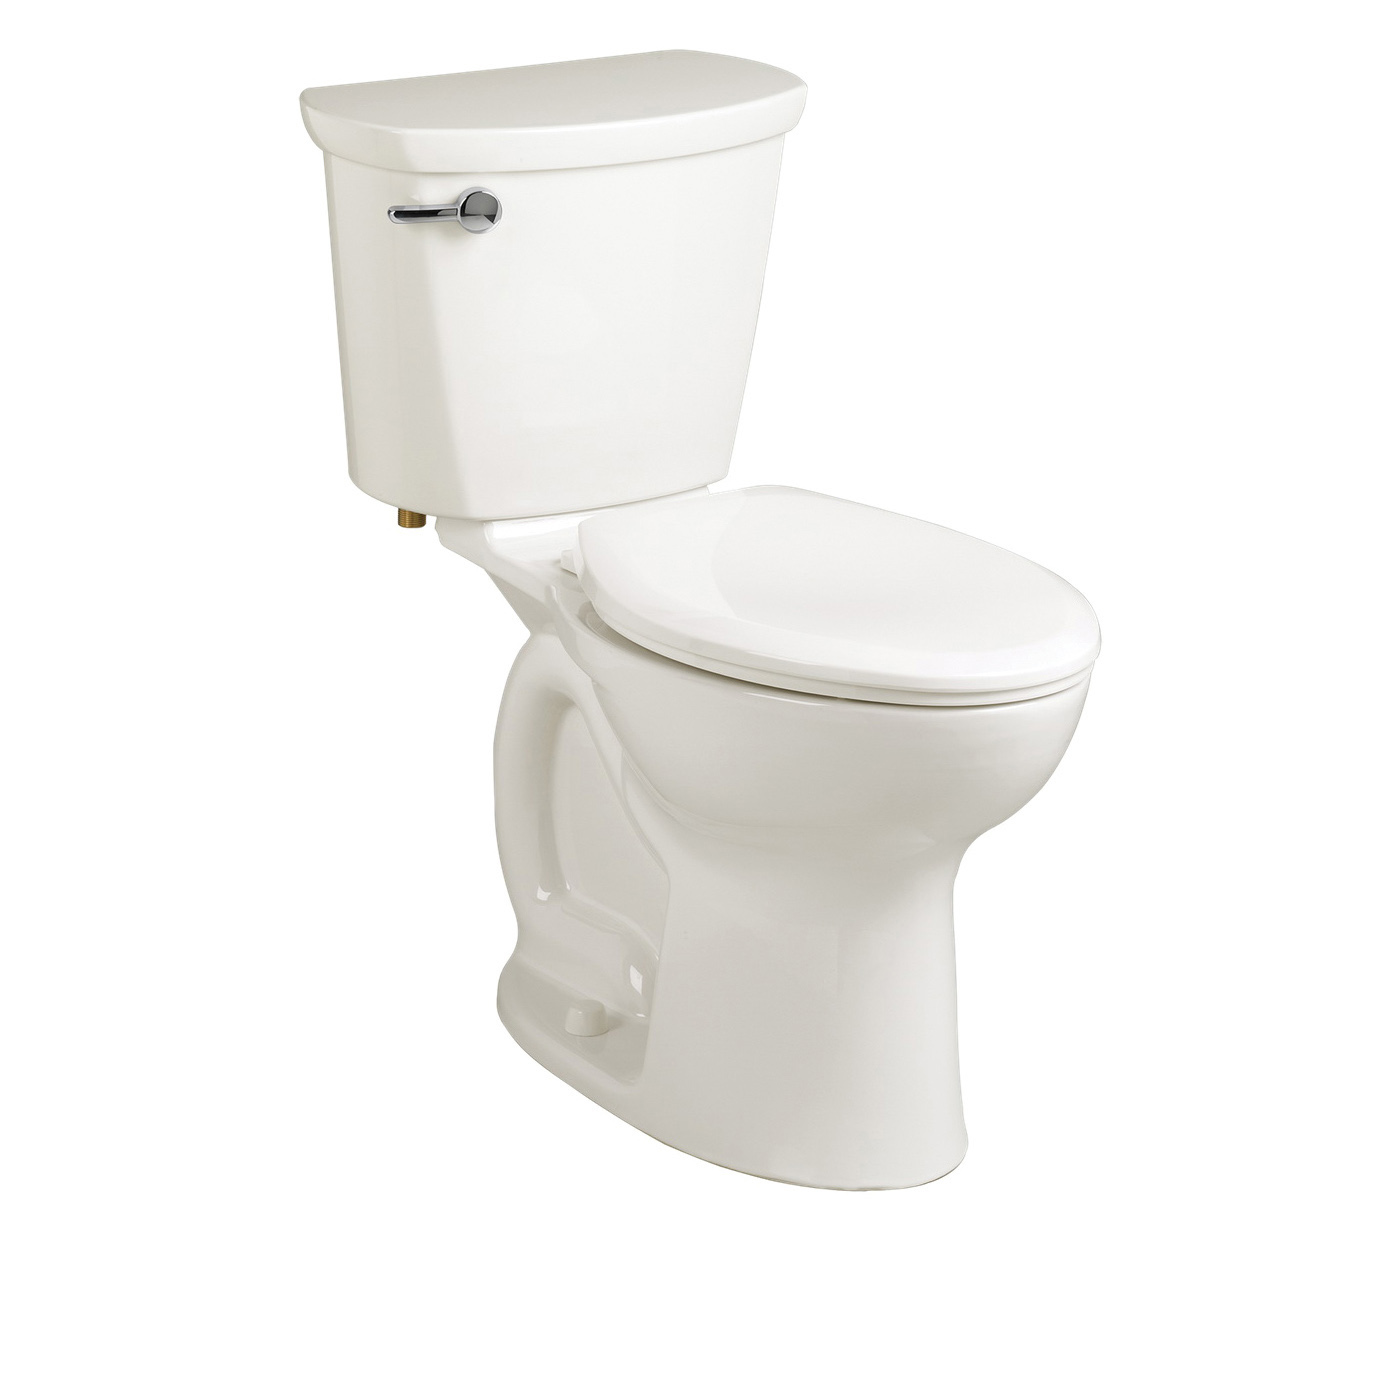 American Standard 215AB104.020 Cadet® Pro™ Right Height™ 2-Piece Toilet, Elongated Bowl, 16-1/2 in H Rim, 1.28 gpf, White, Import